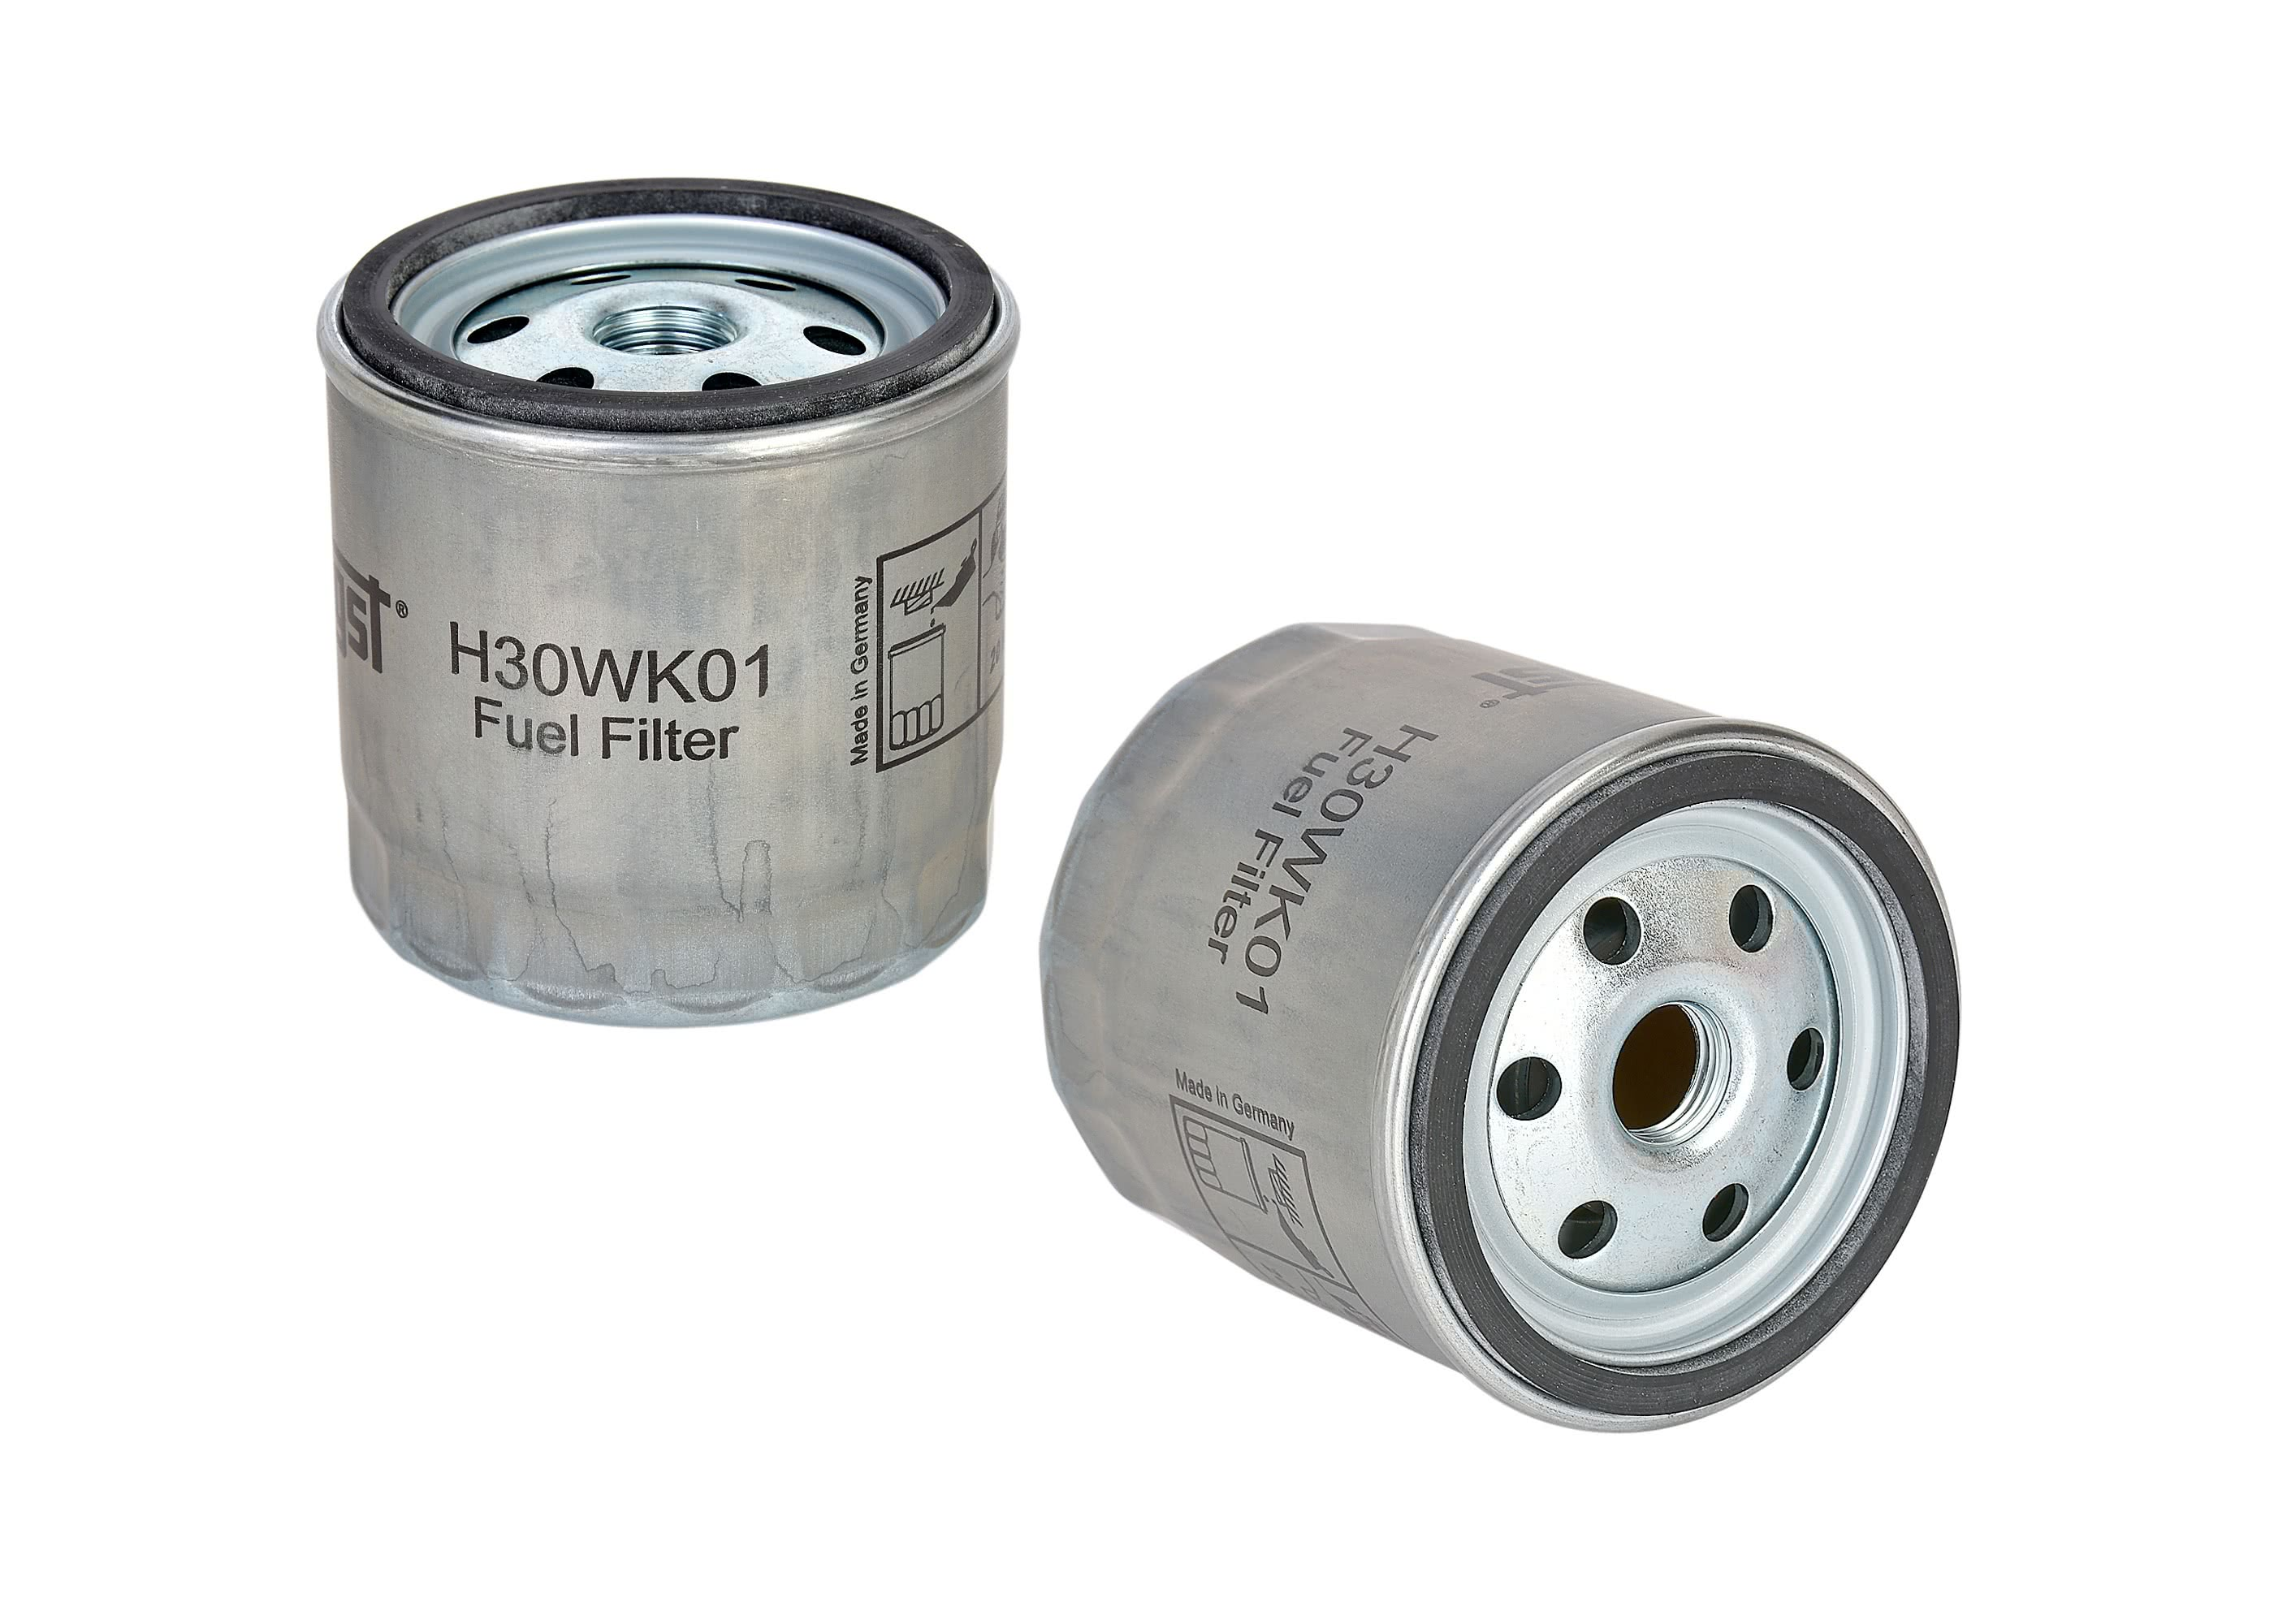 Diesel Filter For Volvo Penta Series Md1 Md17 2000s Product Images Boat Fuel Location Svb Yacht And Equipment